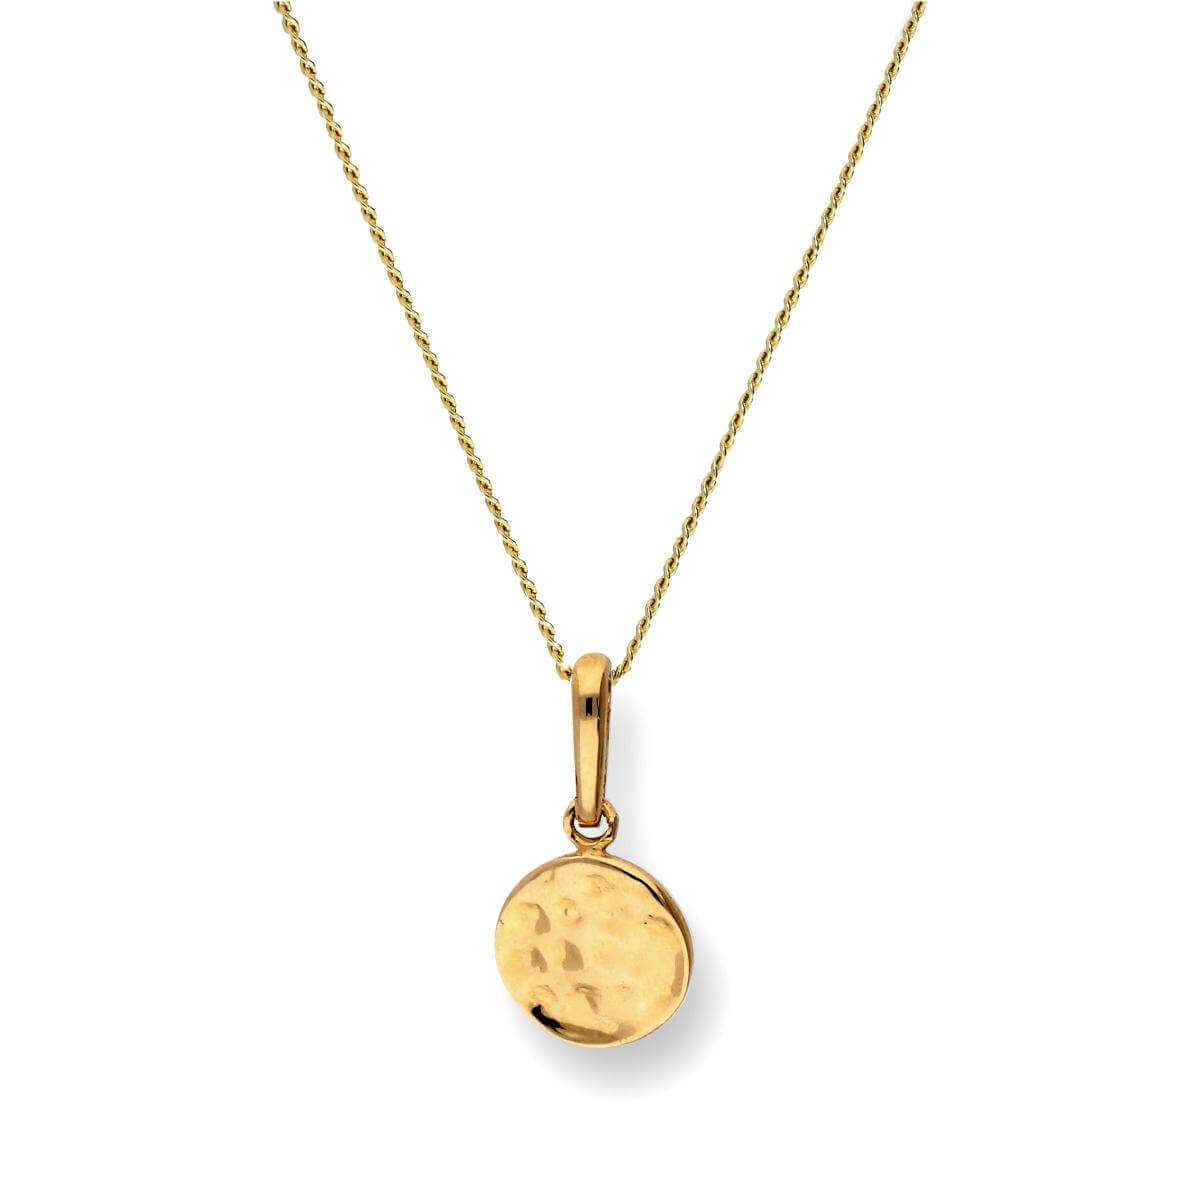 9ct Gold Hammered Finish Round Pendant Necklace